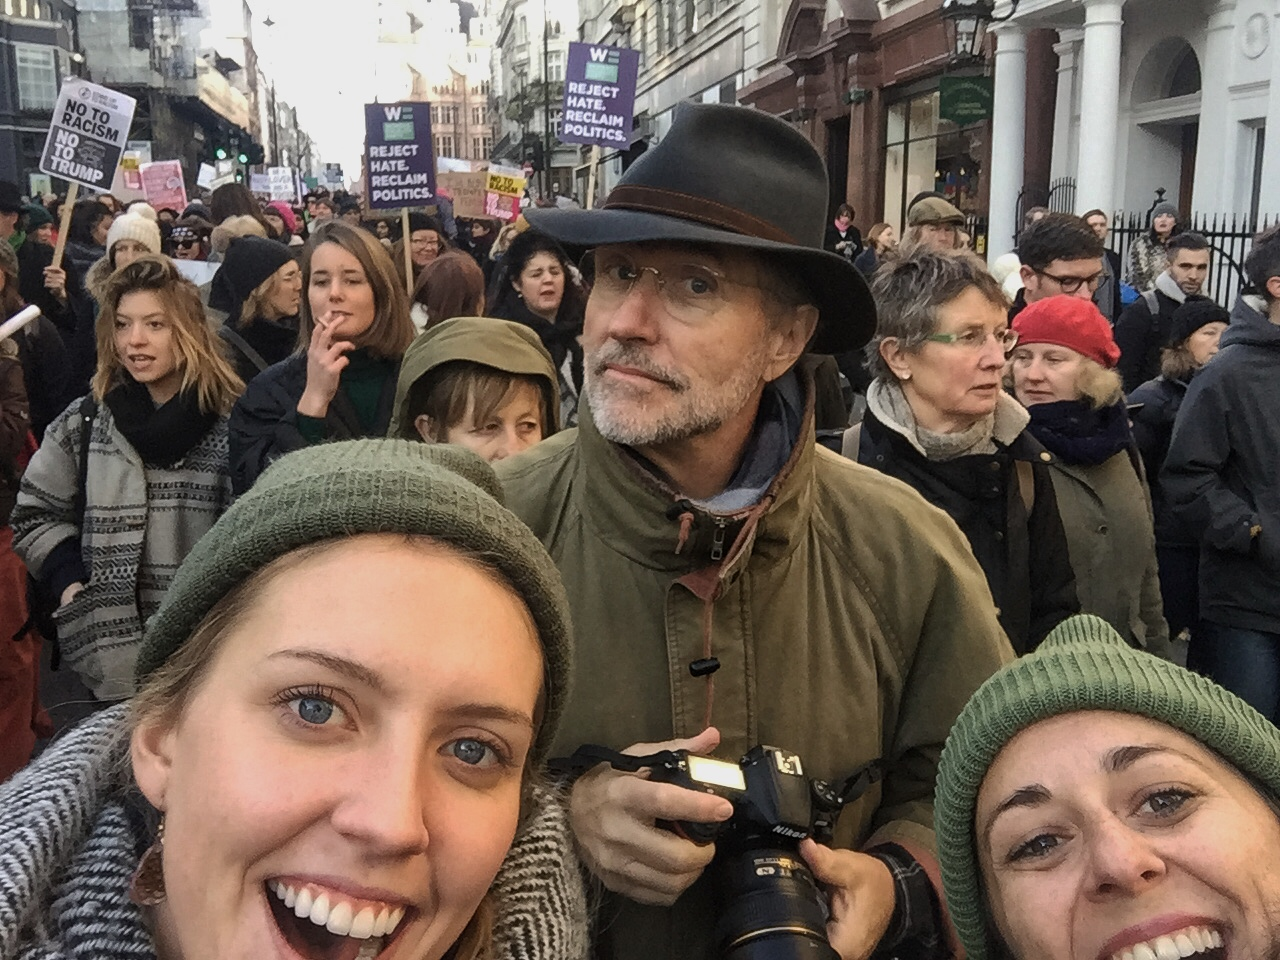 @LittleLauraHeald with Jen and Bill at London's Women's March.